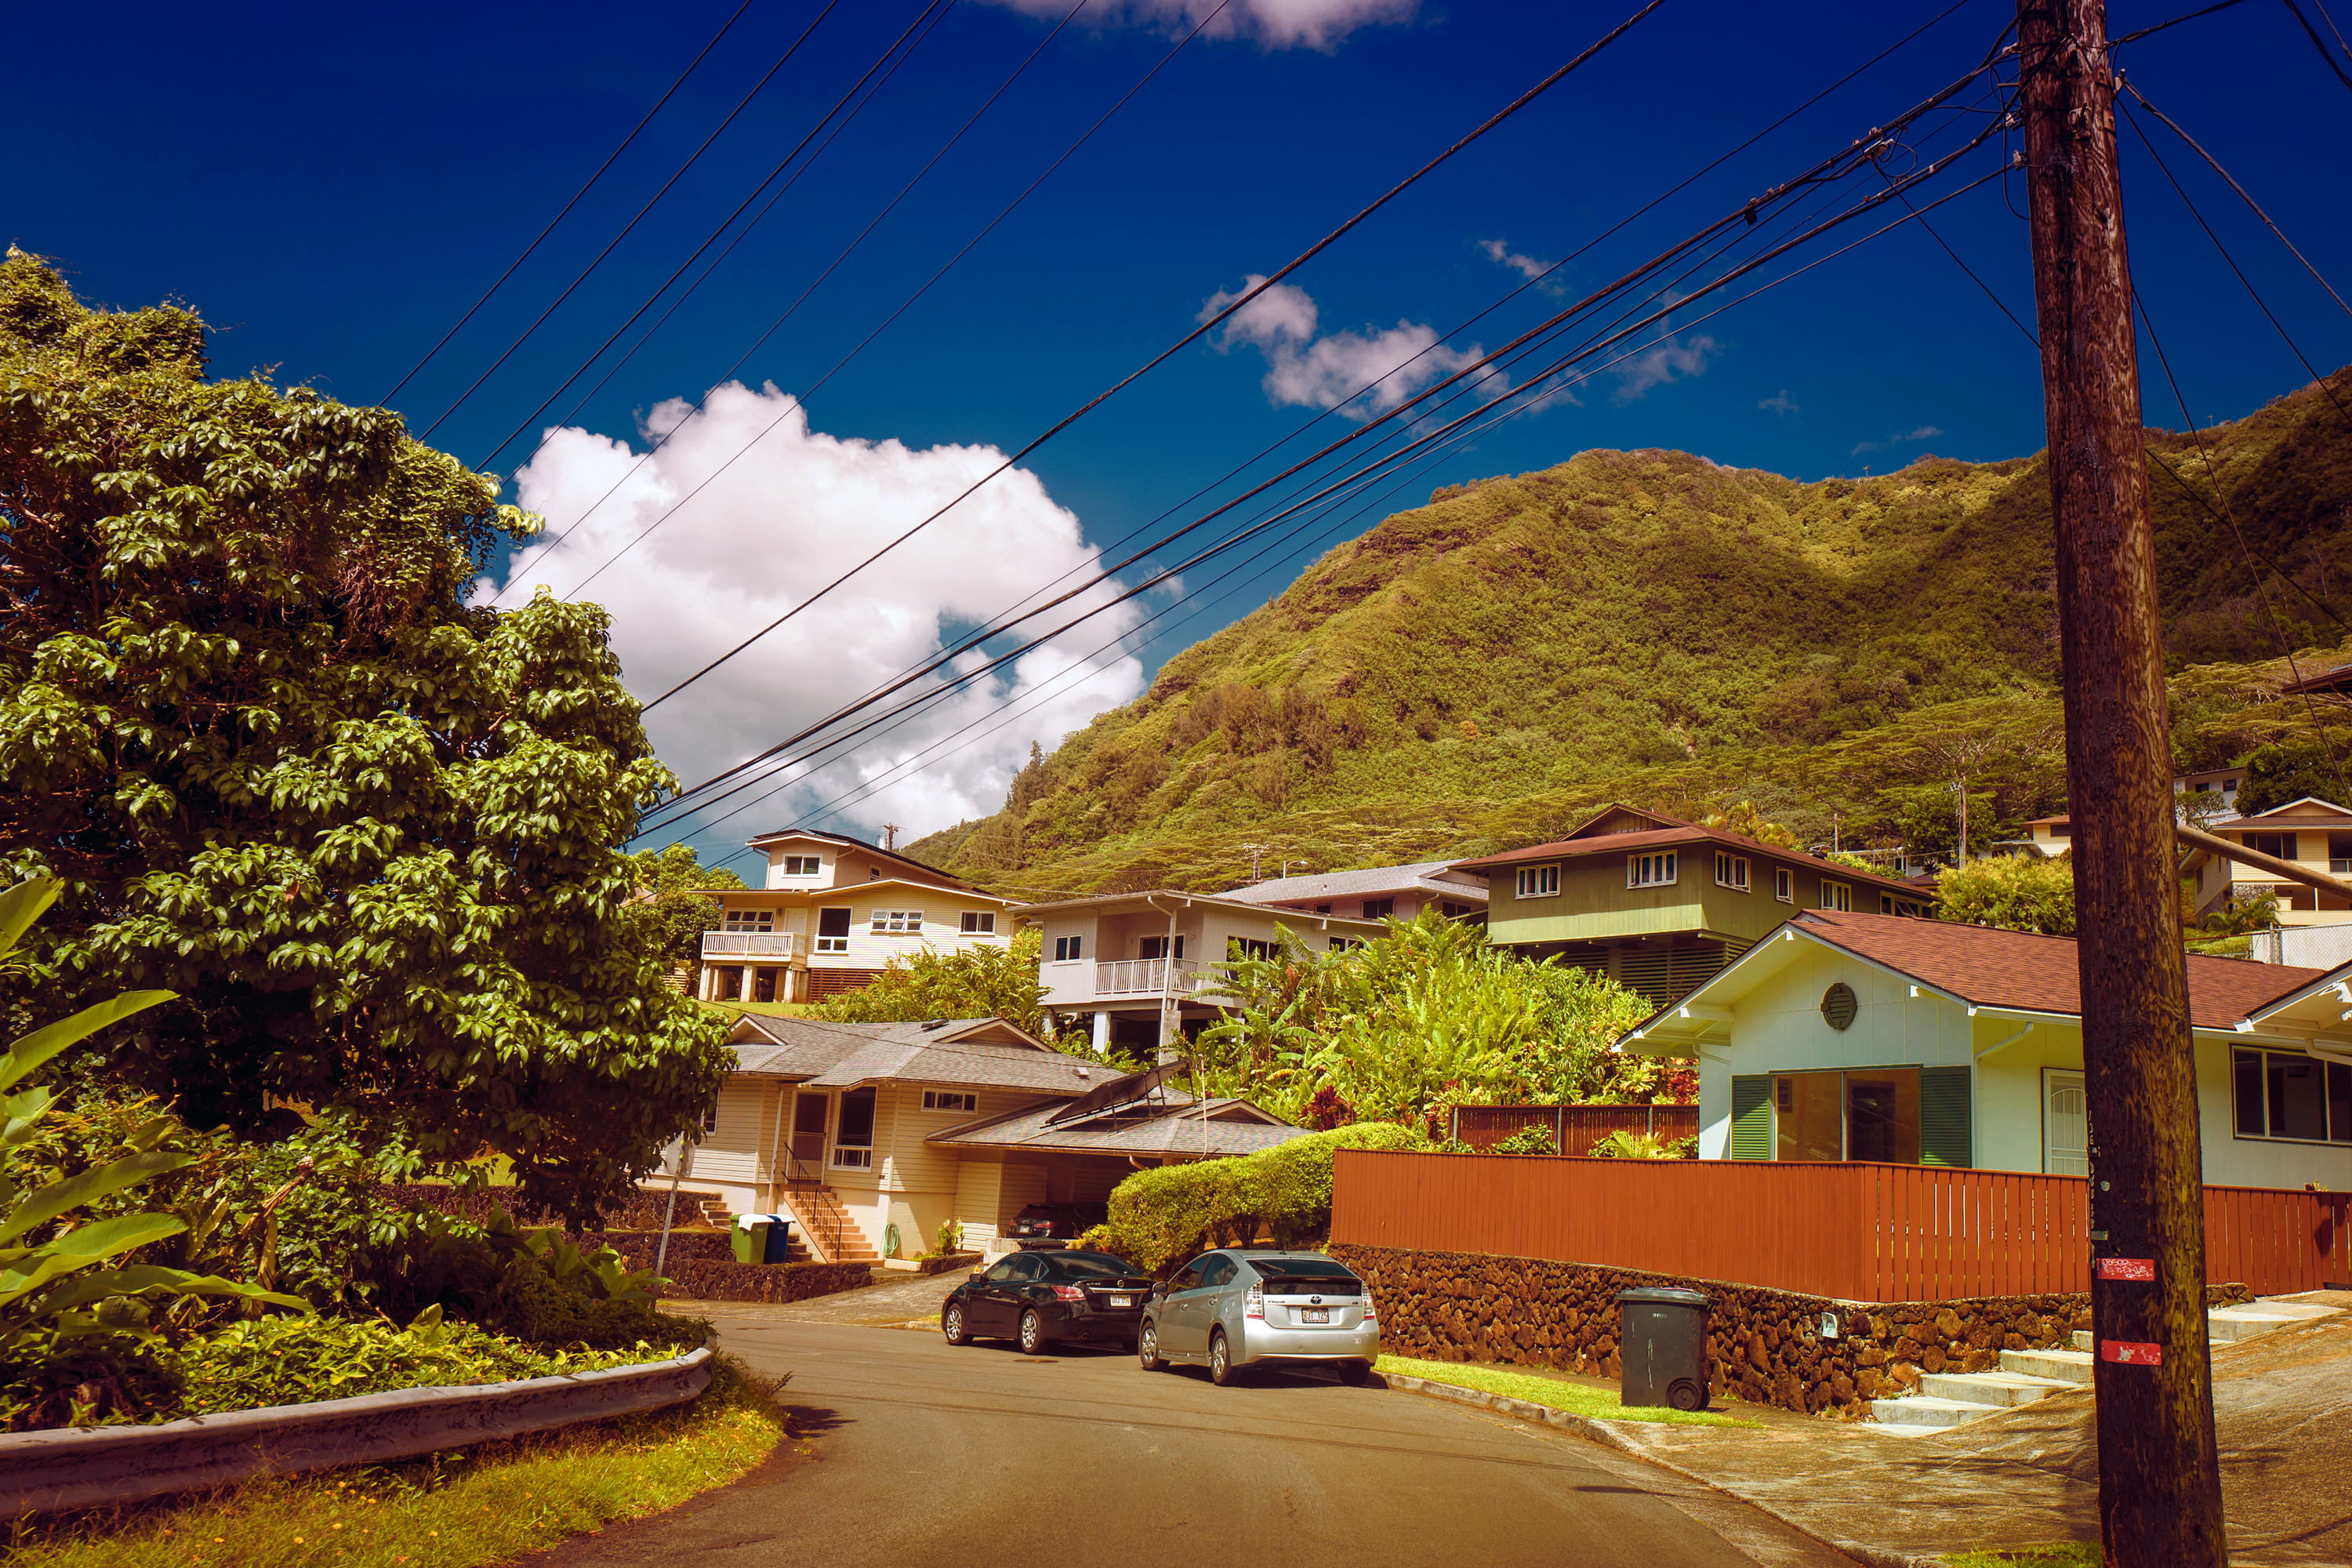 Local Scene, Manoa